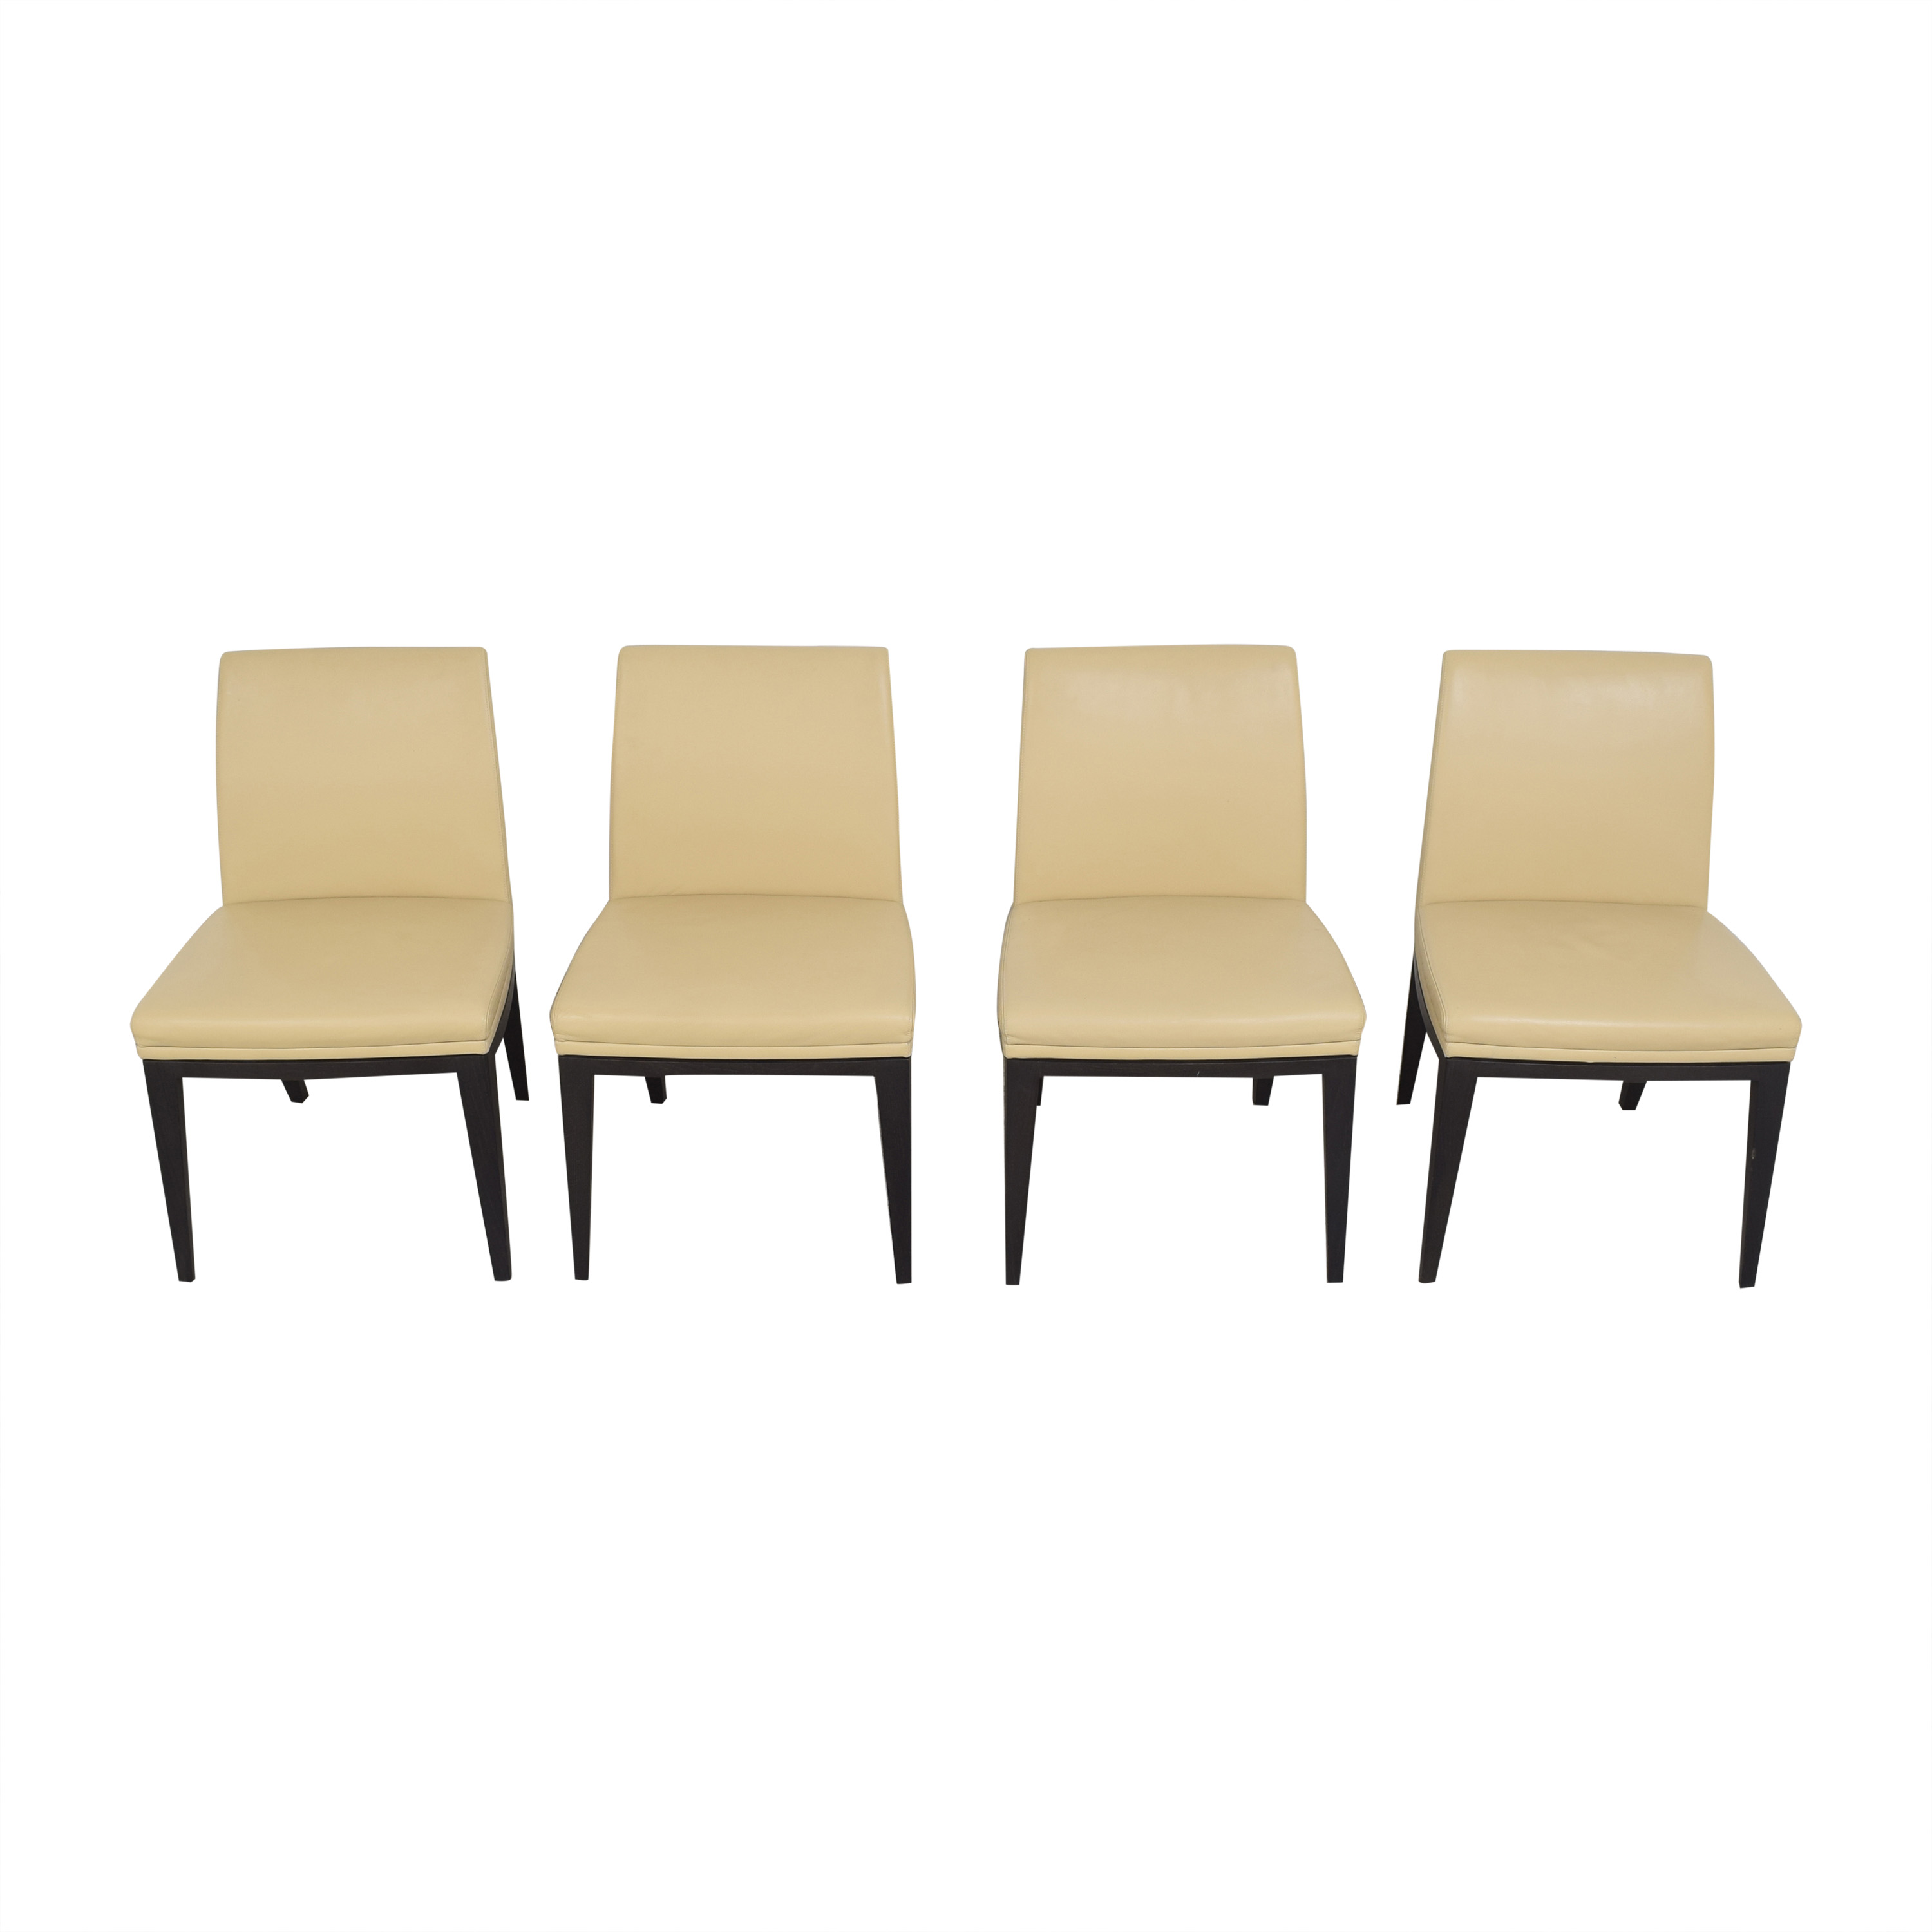 Maurice Villency Maurice Villency Dining Chairs second hand